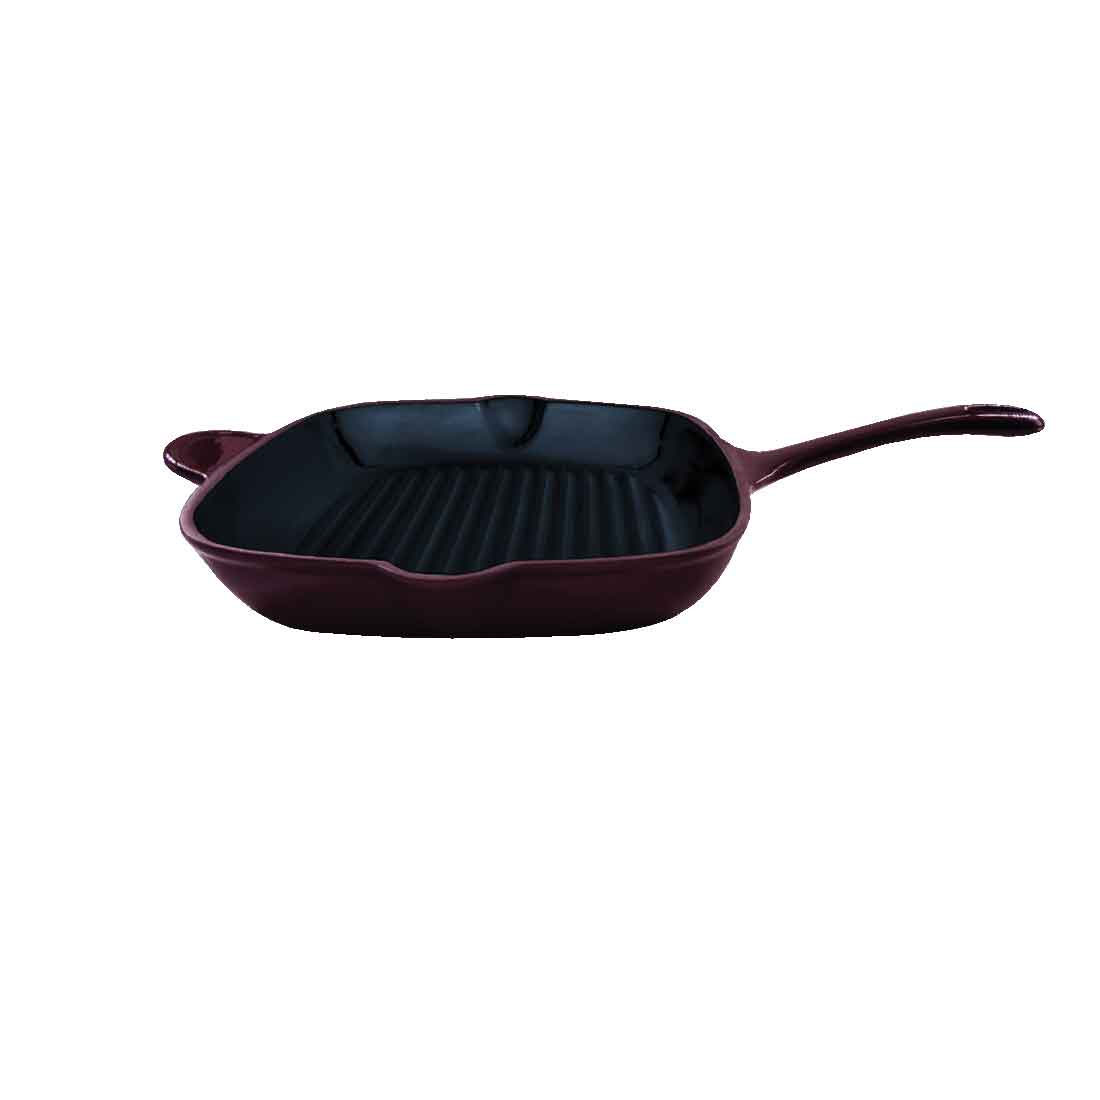 Ferro Cast-Iron Grill Pan - 29.5cm, 2.6L, 4.5mm, Majolica Red